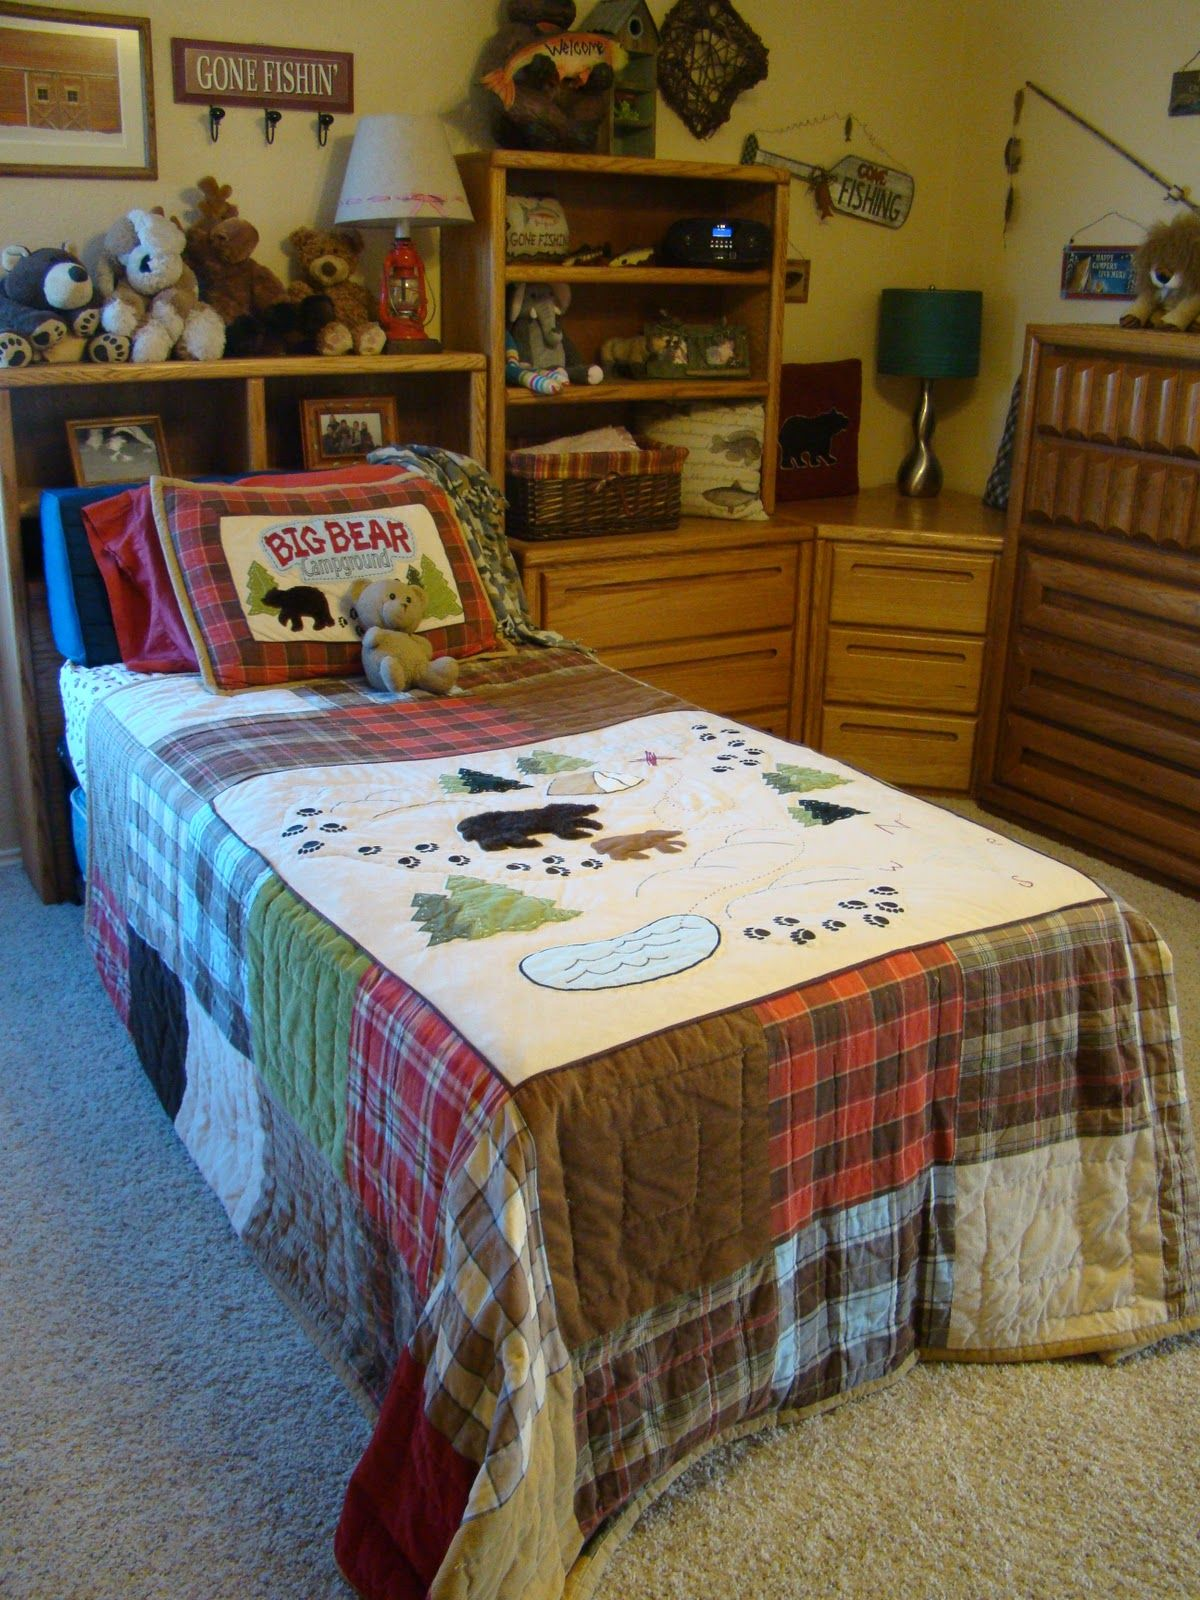 Lodge bedding fishing lodge bedding by woolrich from for Room decor target